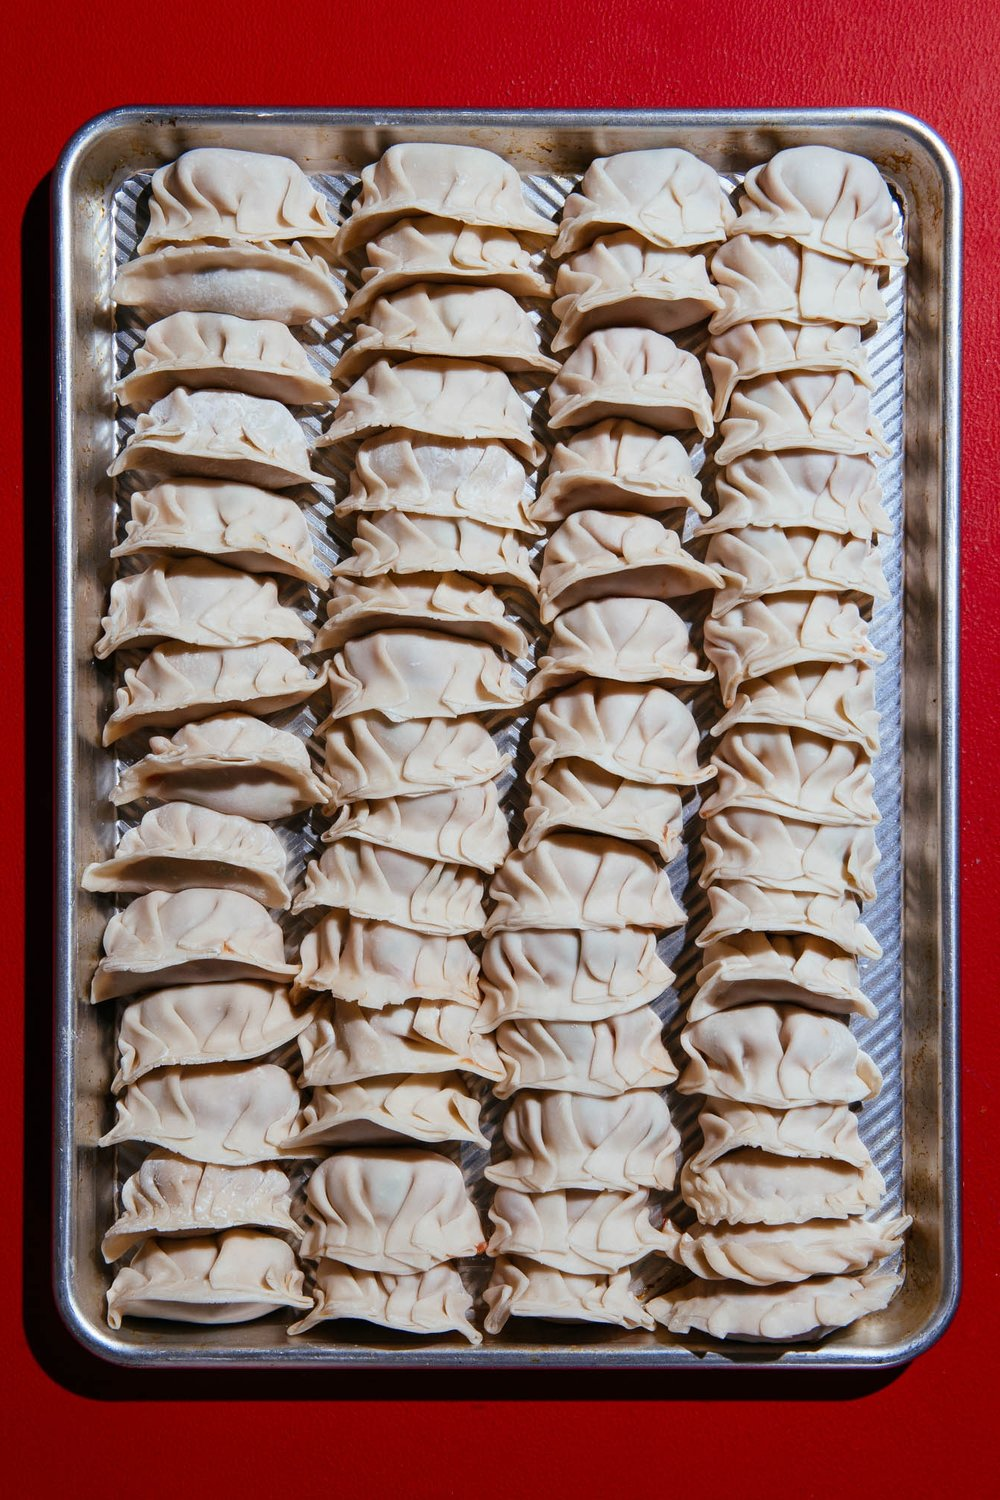 Lunar New Year Pork and Shrimp Dumplings